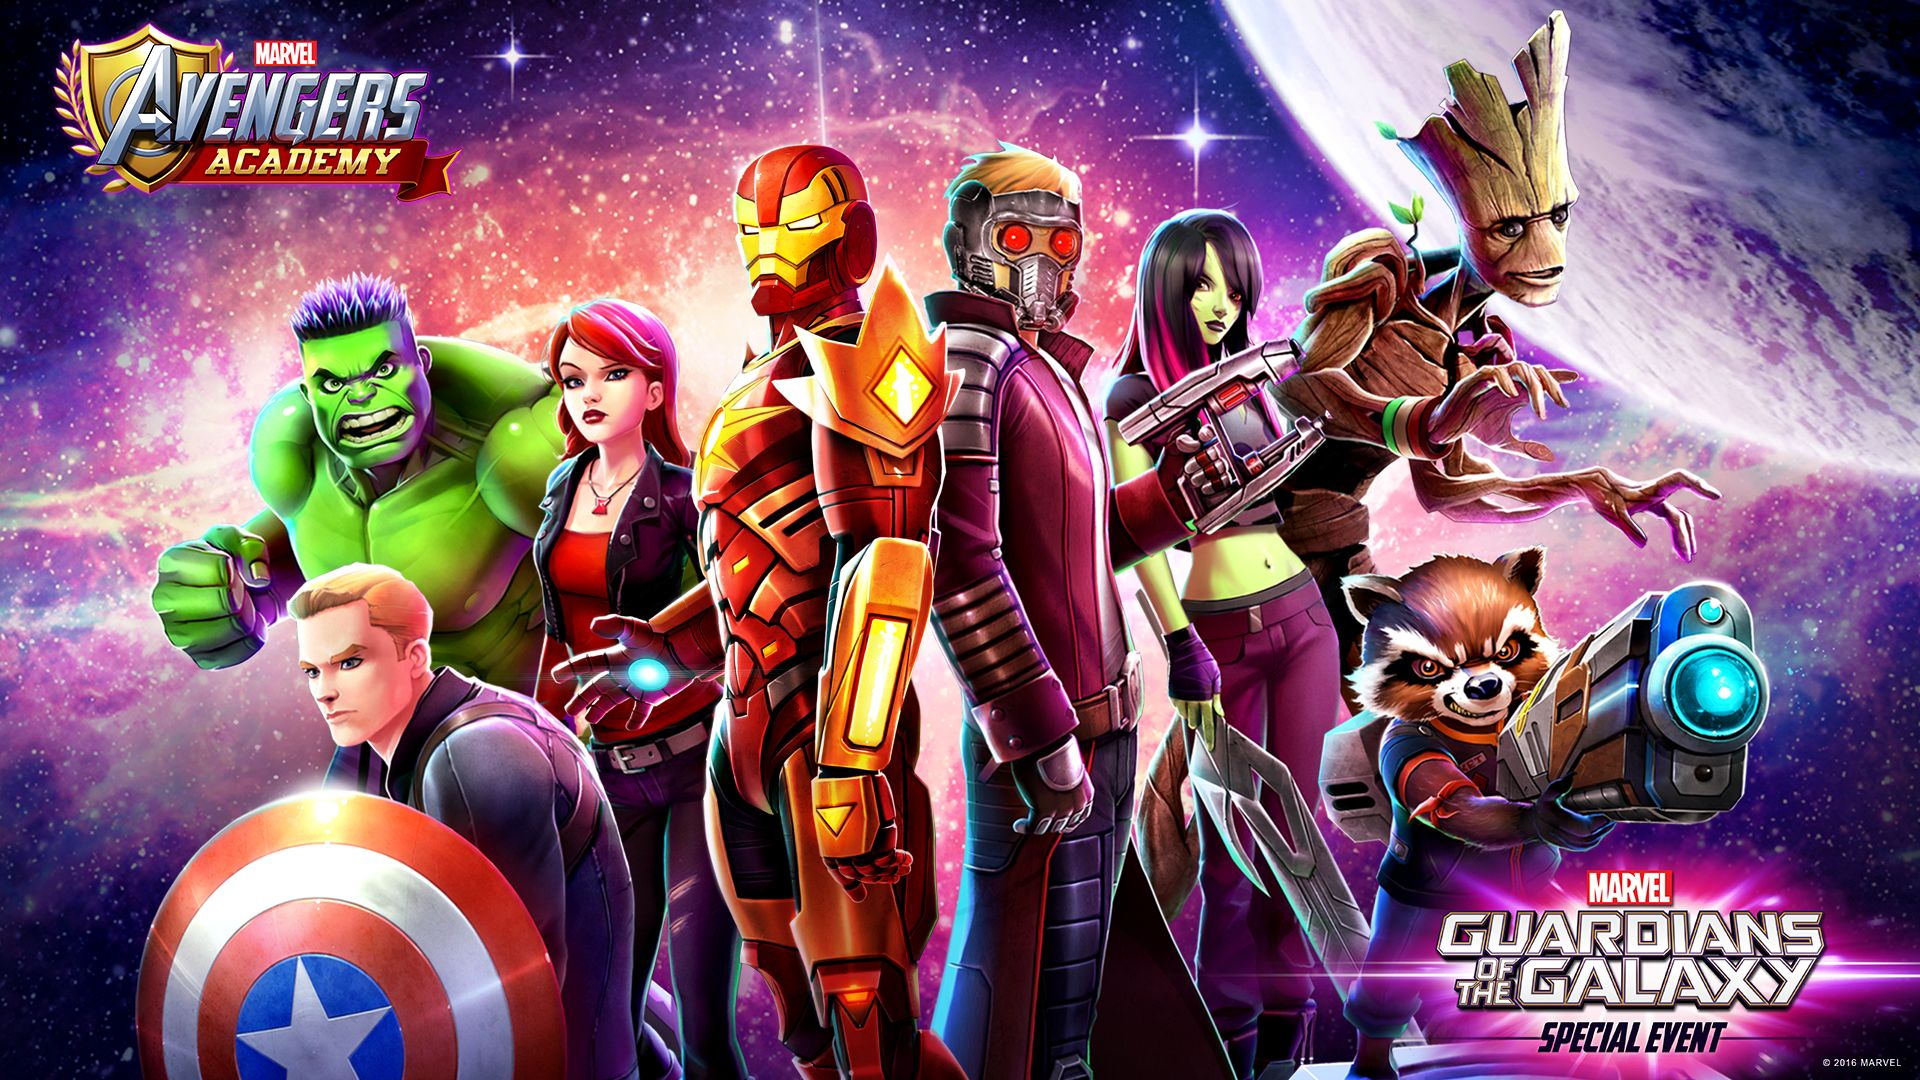 Marvel Avengers Academy: Guardians Of The Galaxy Arrive